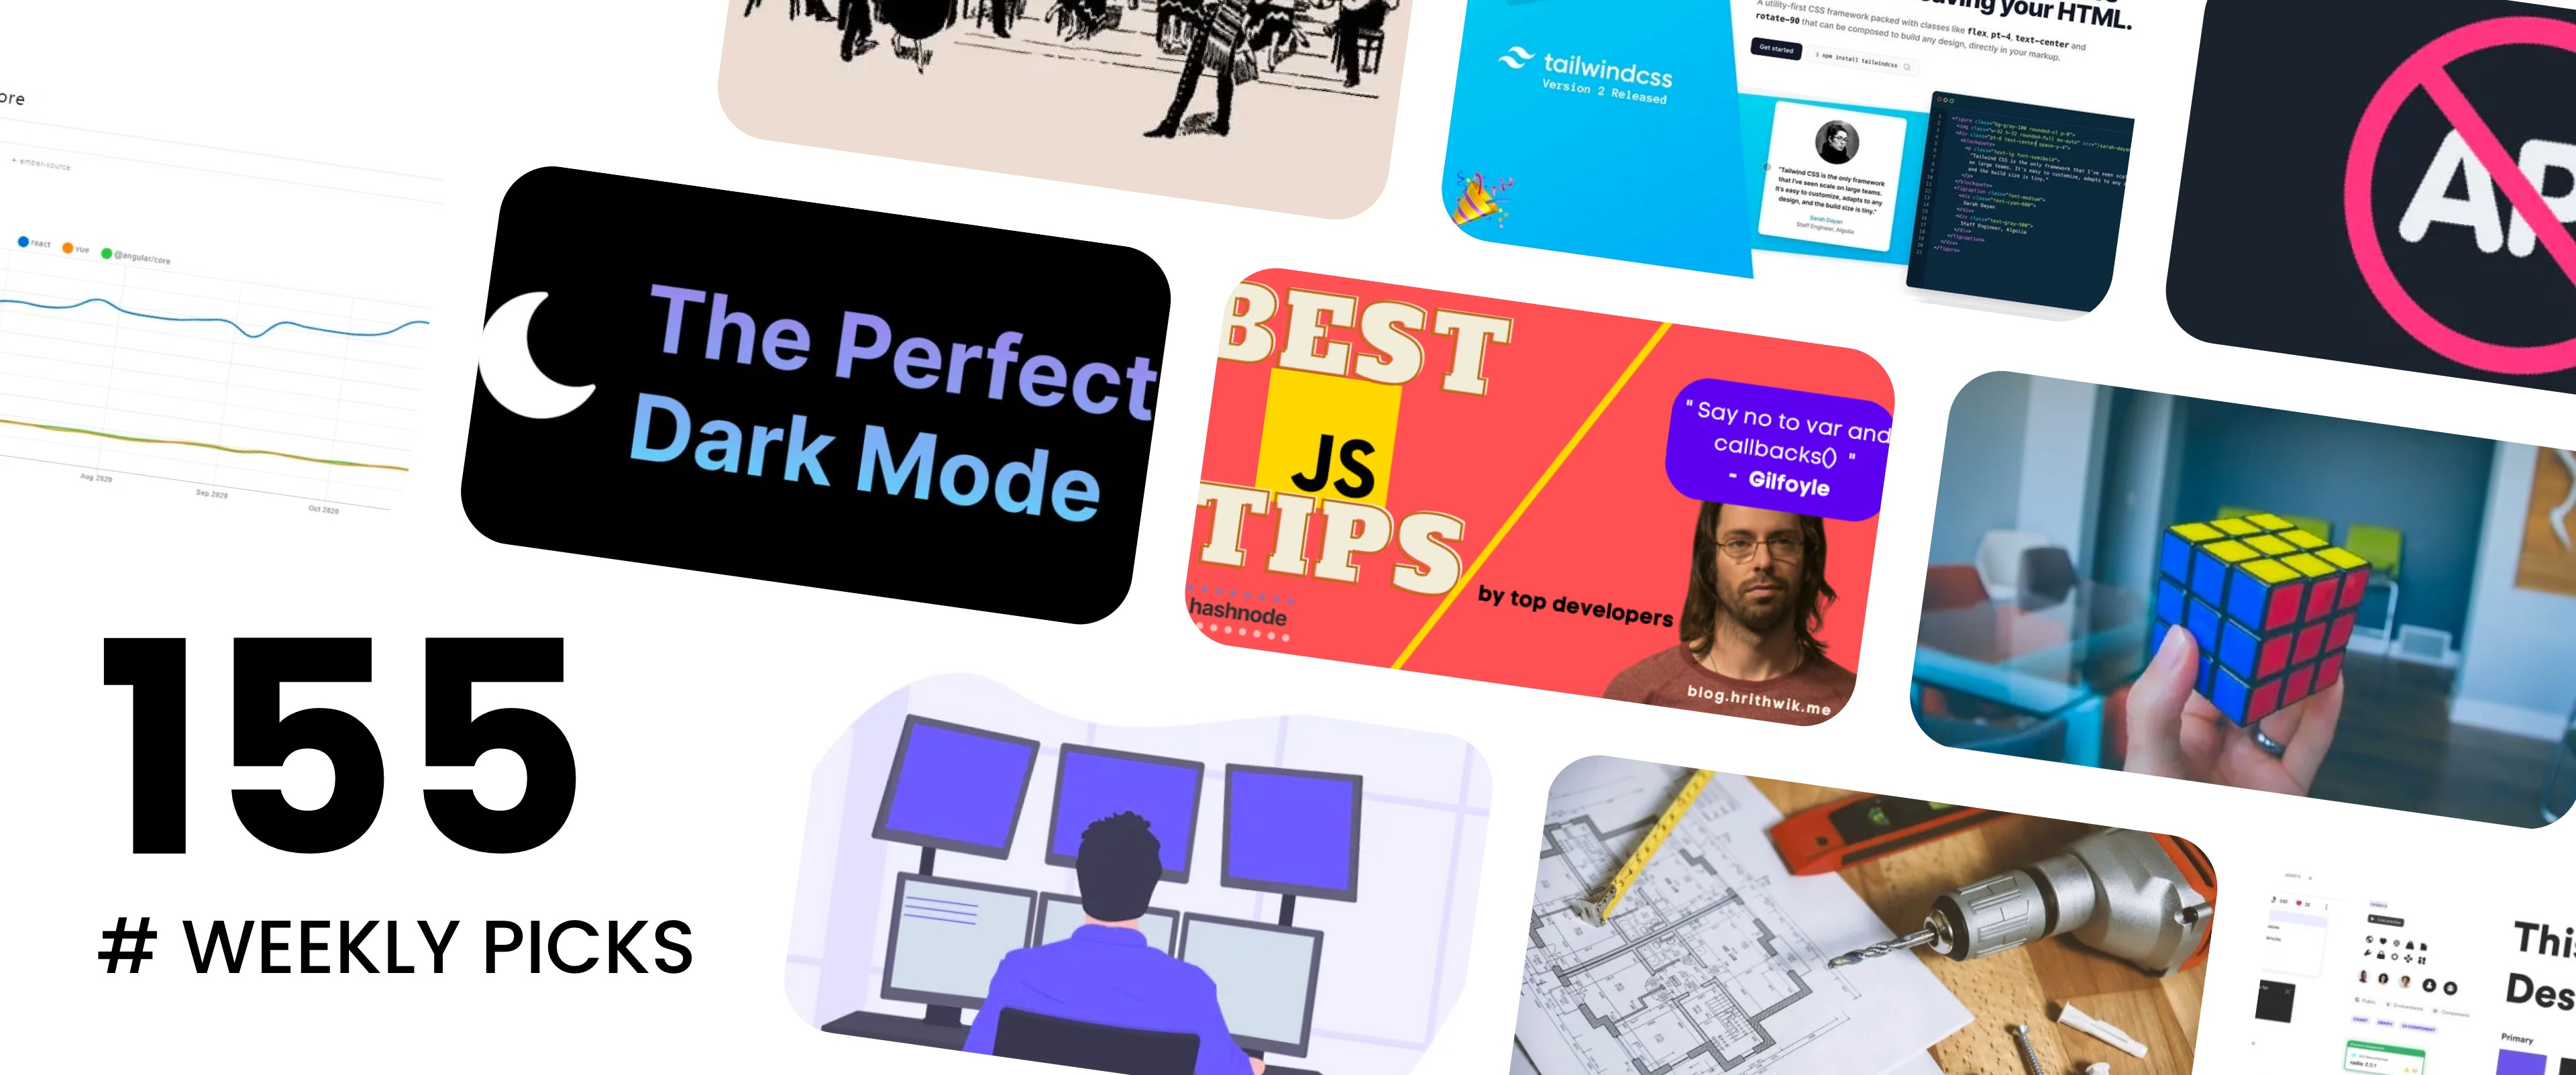 🔥 What's Hot in Web Development? — Weekly Picks #155